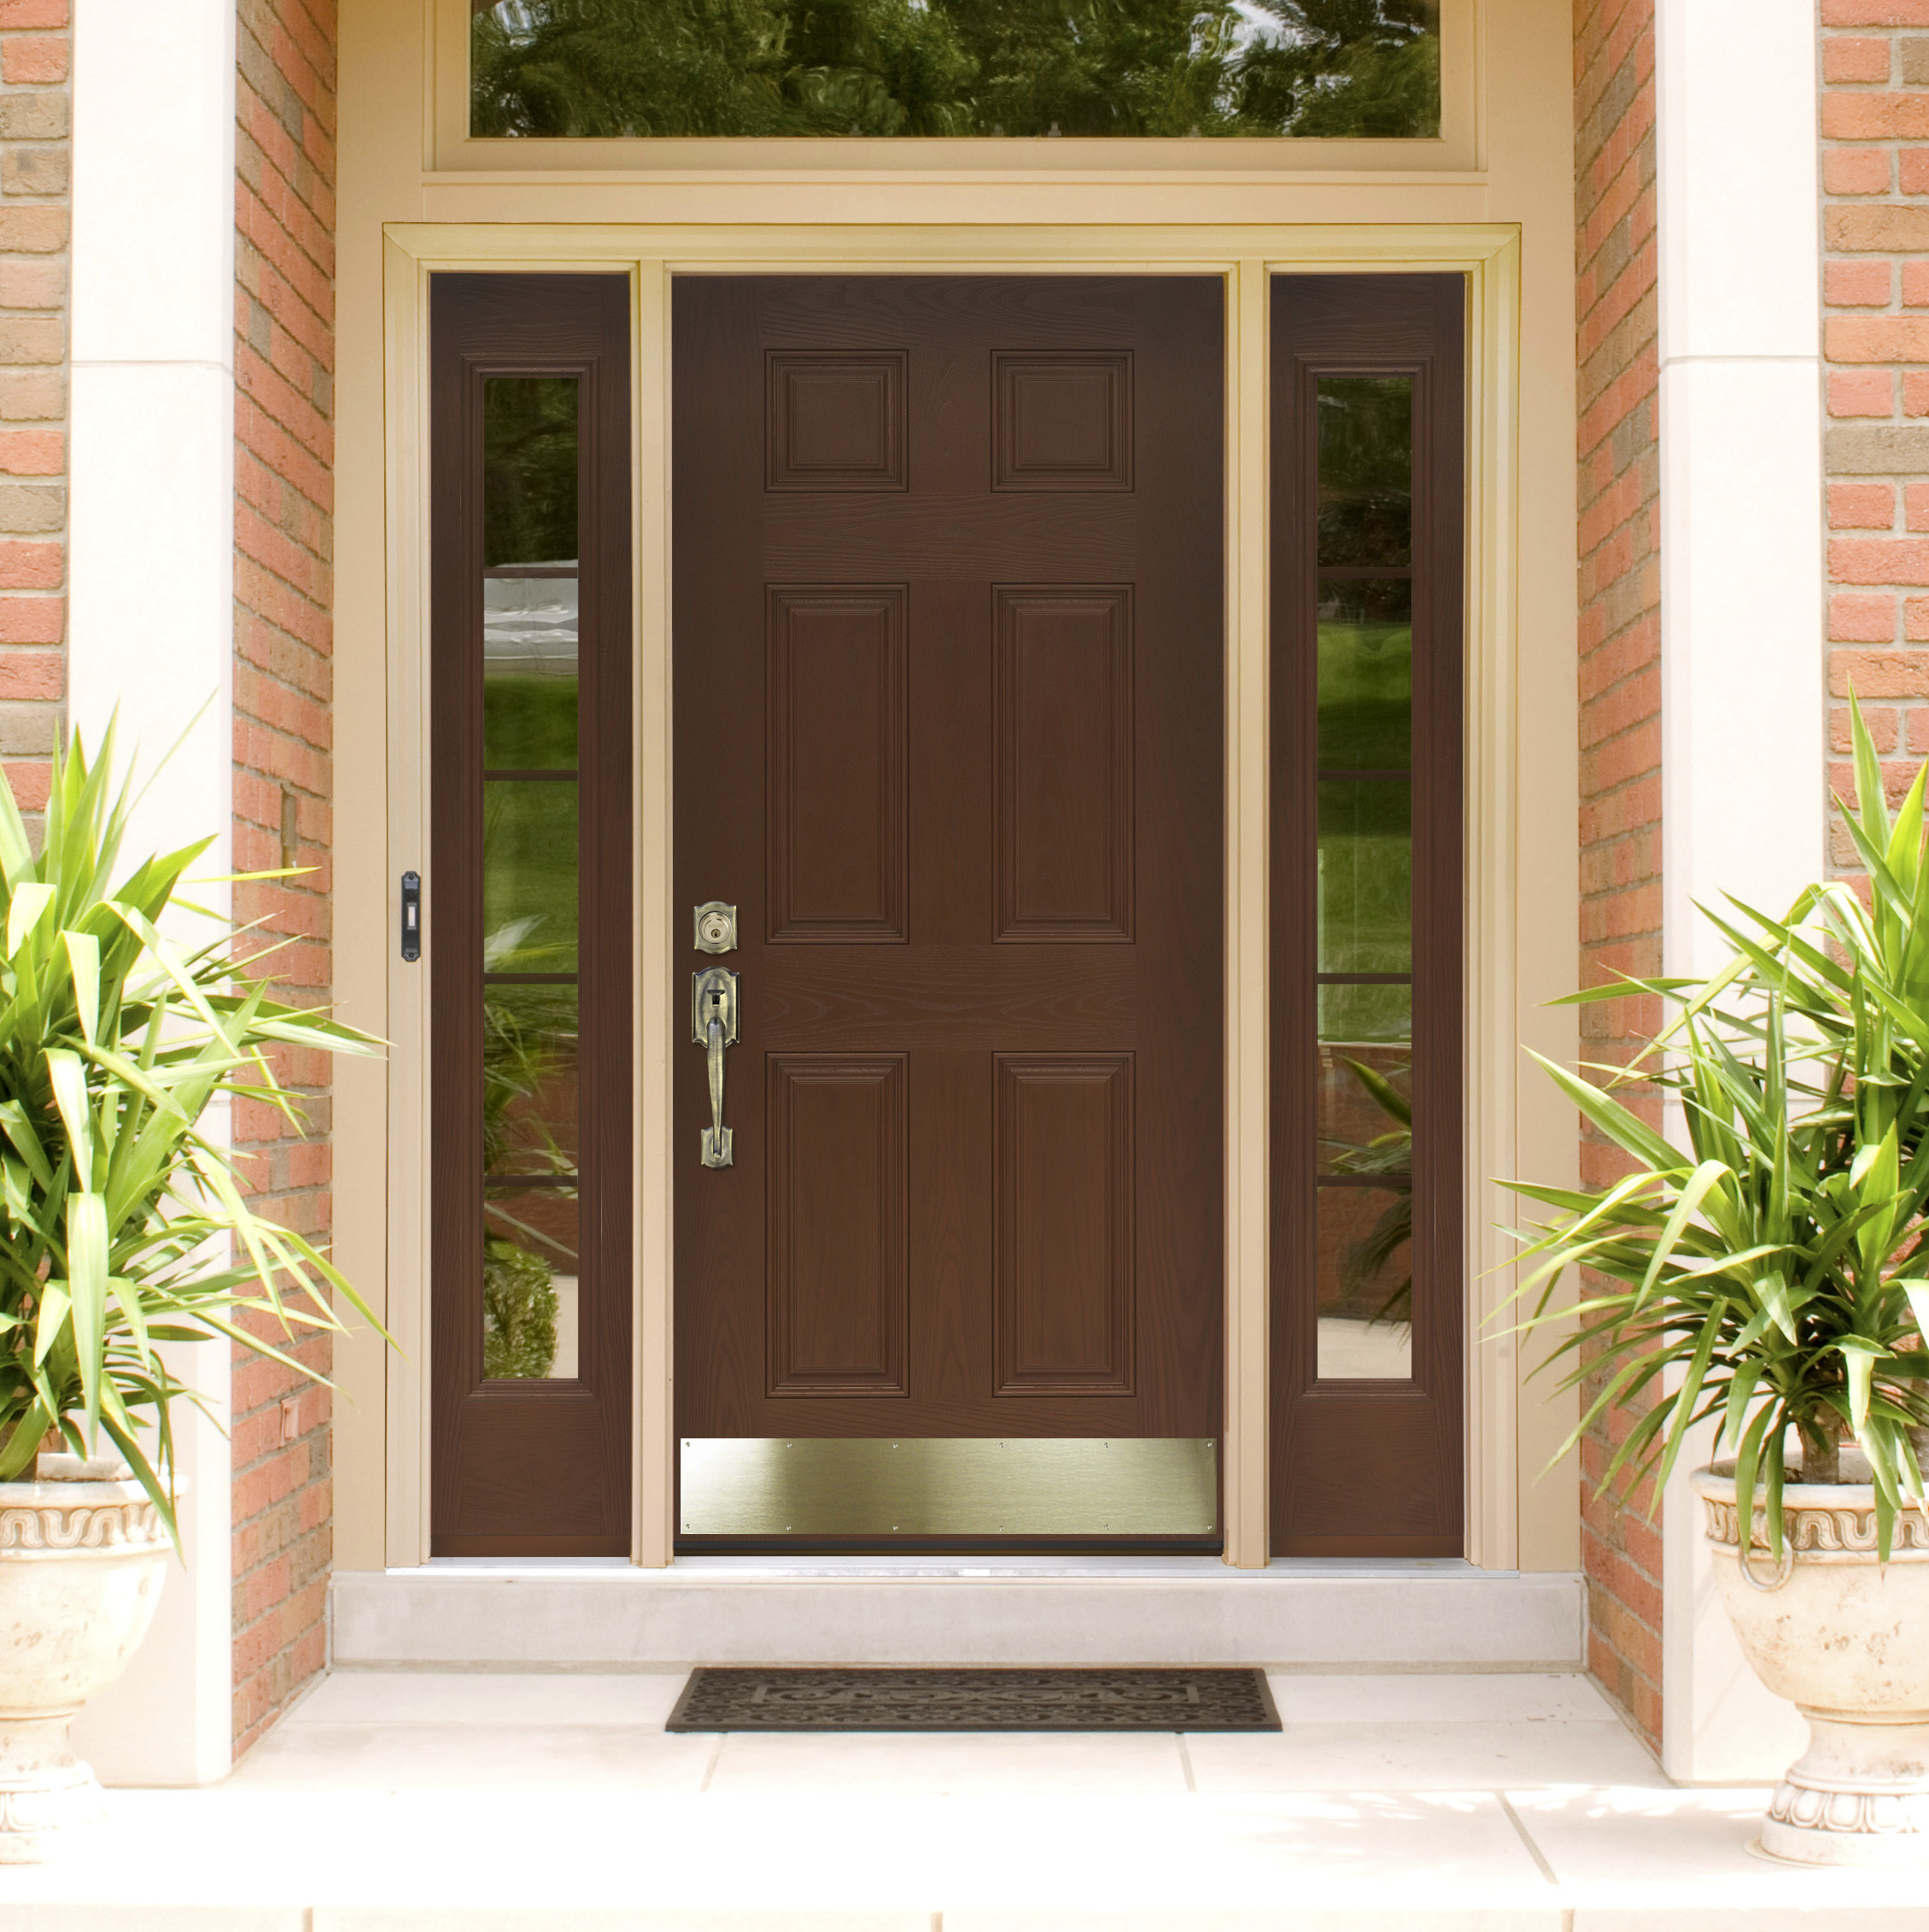 2262 #505B18 Wooden Doors Houston Picture Album Images Picture Are Ideas image Wooden Doors Houston 45732259